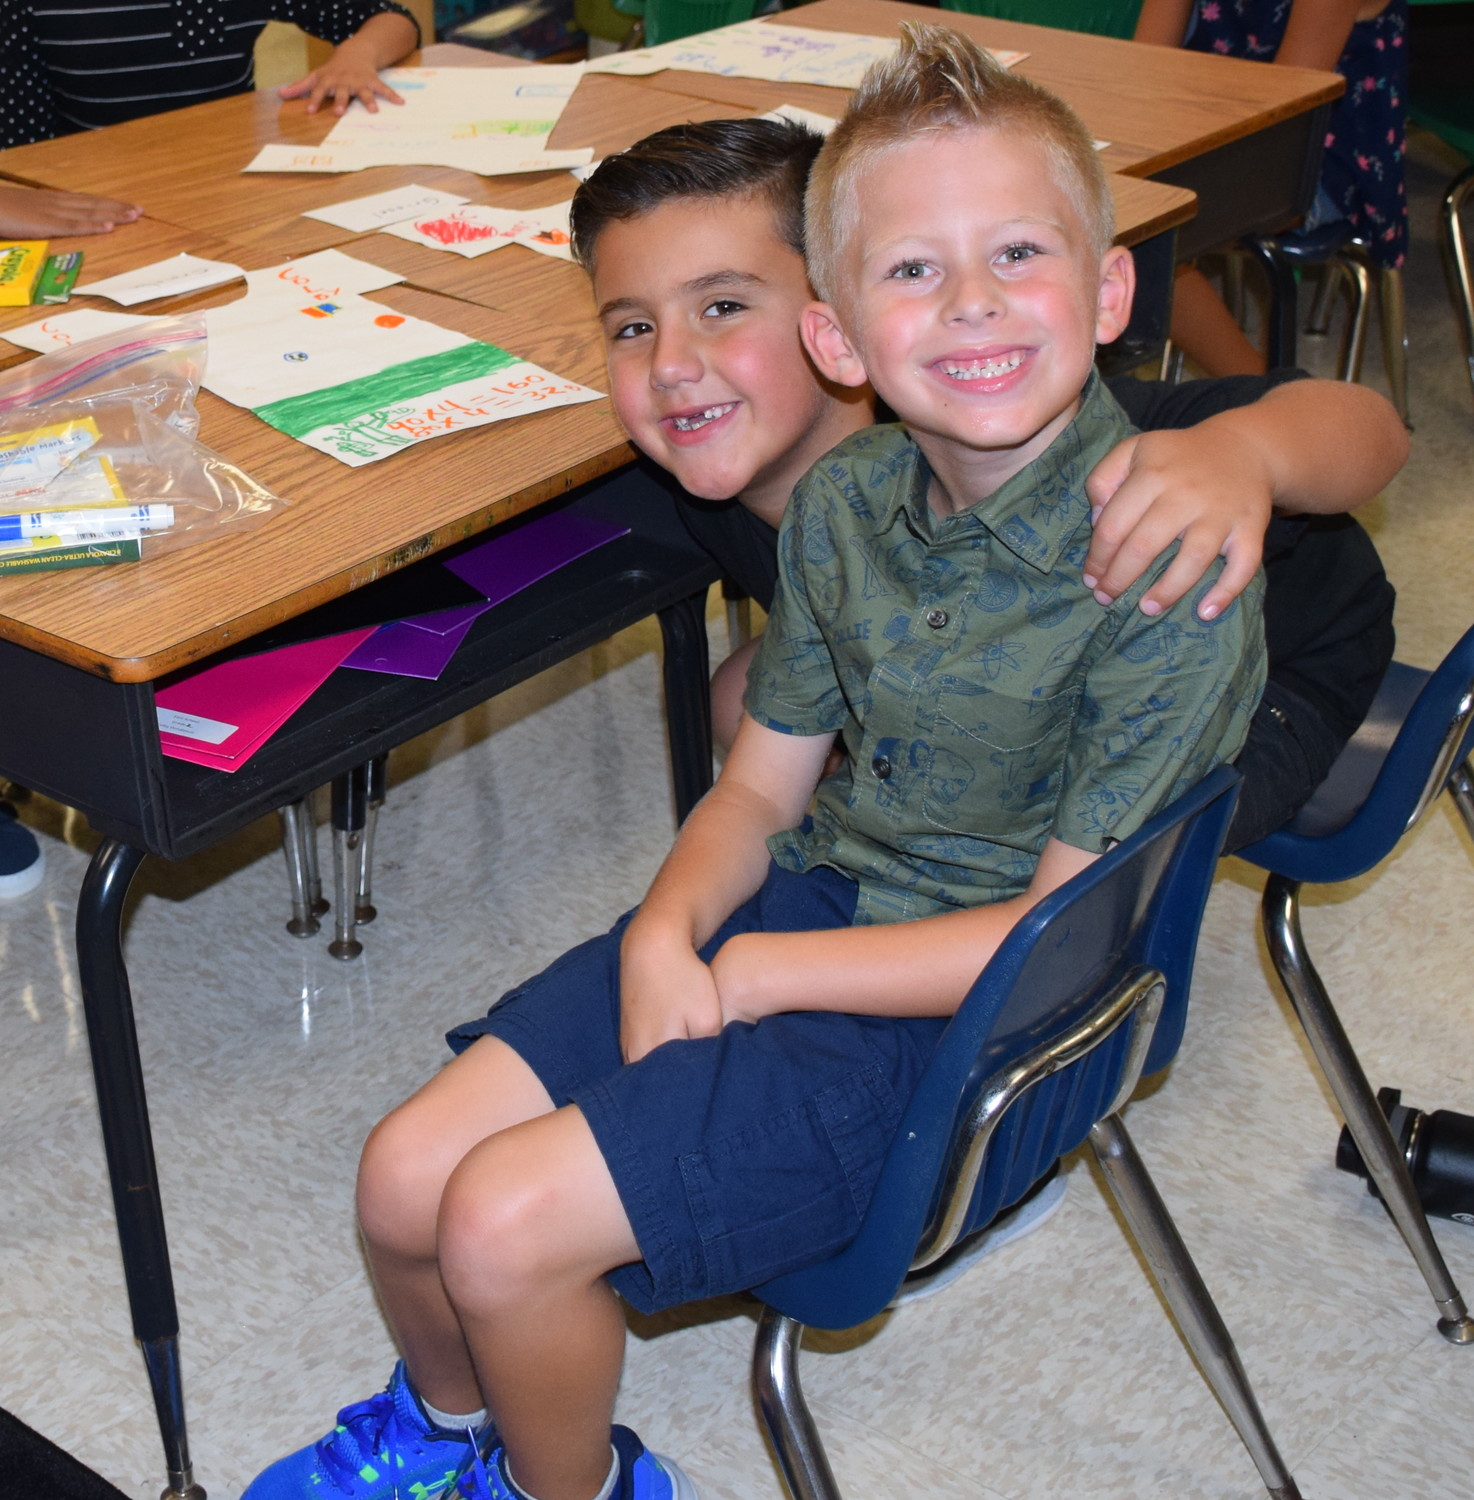 Daniel Medina, left, and Colby Donaldson met up at East Elementary School on the first day of school.